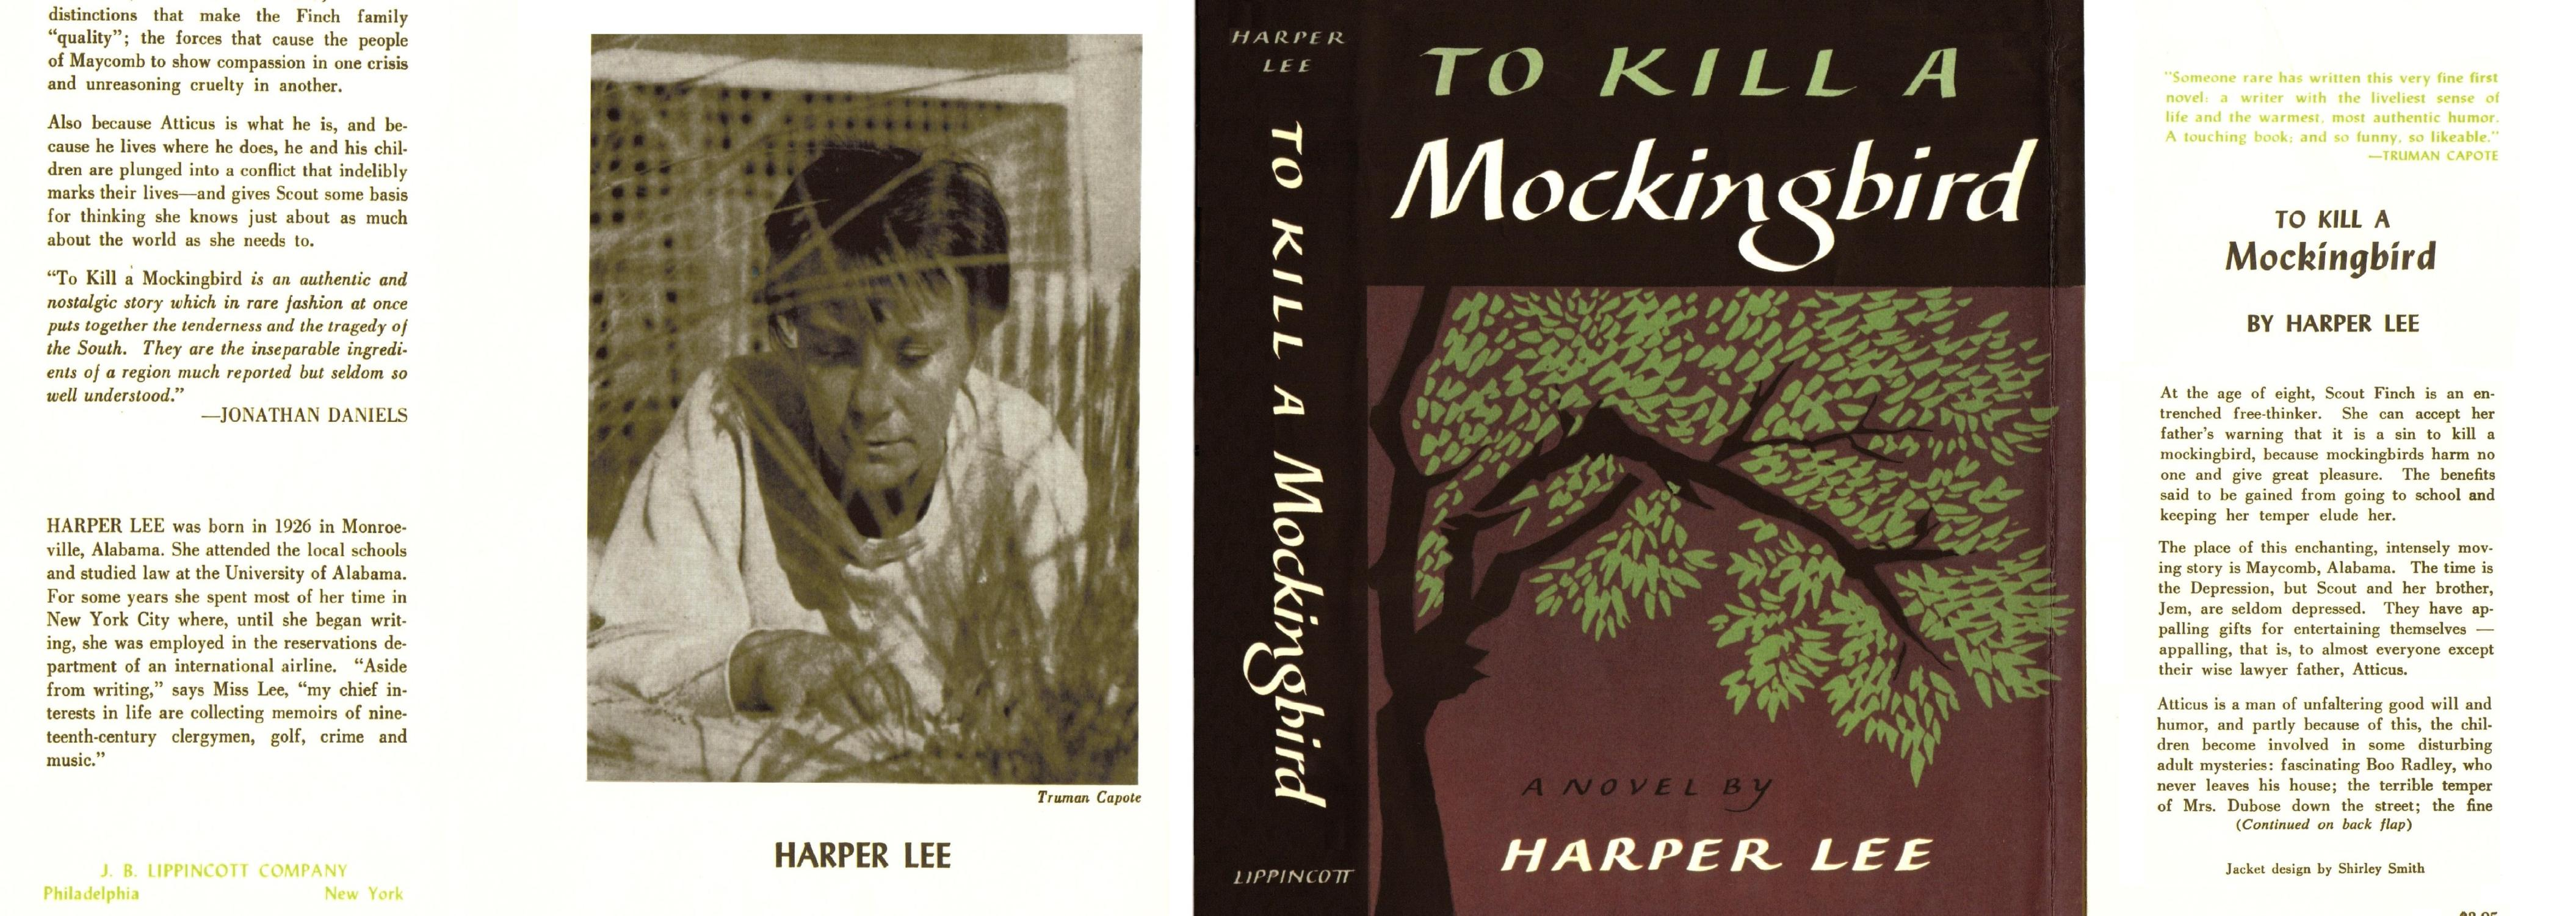 understanding compassion and tolerance in harper lees novel to kill mockingbird